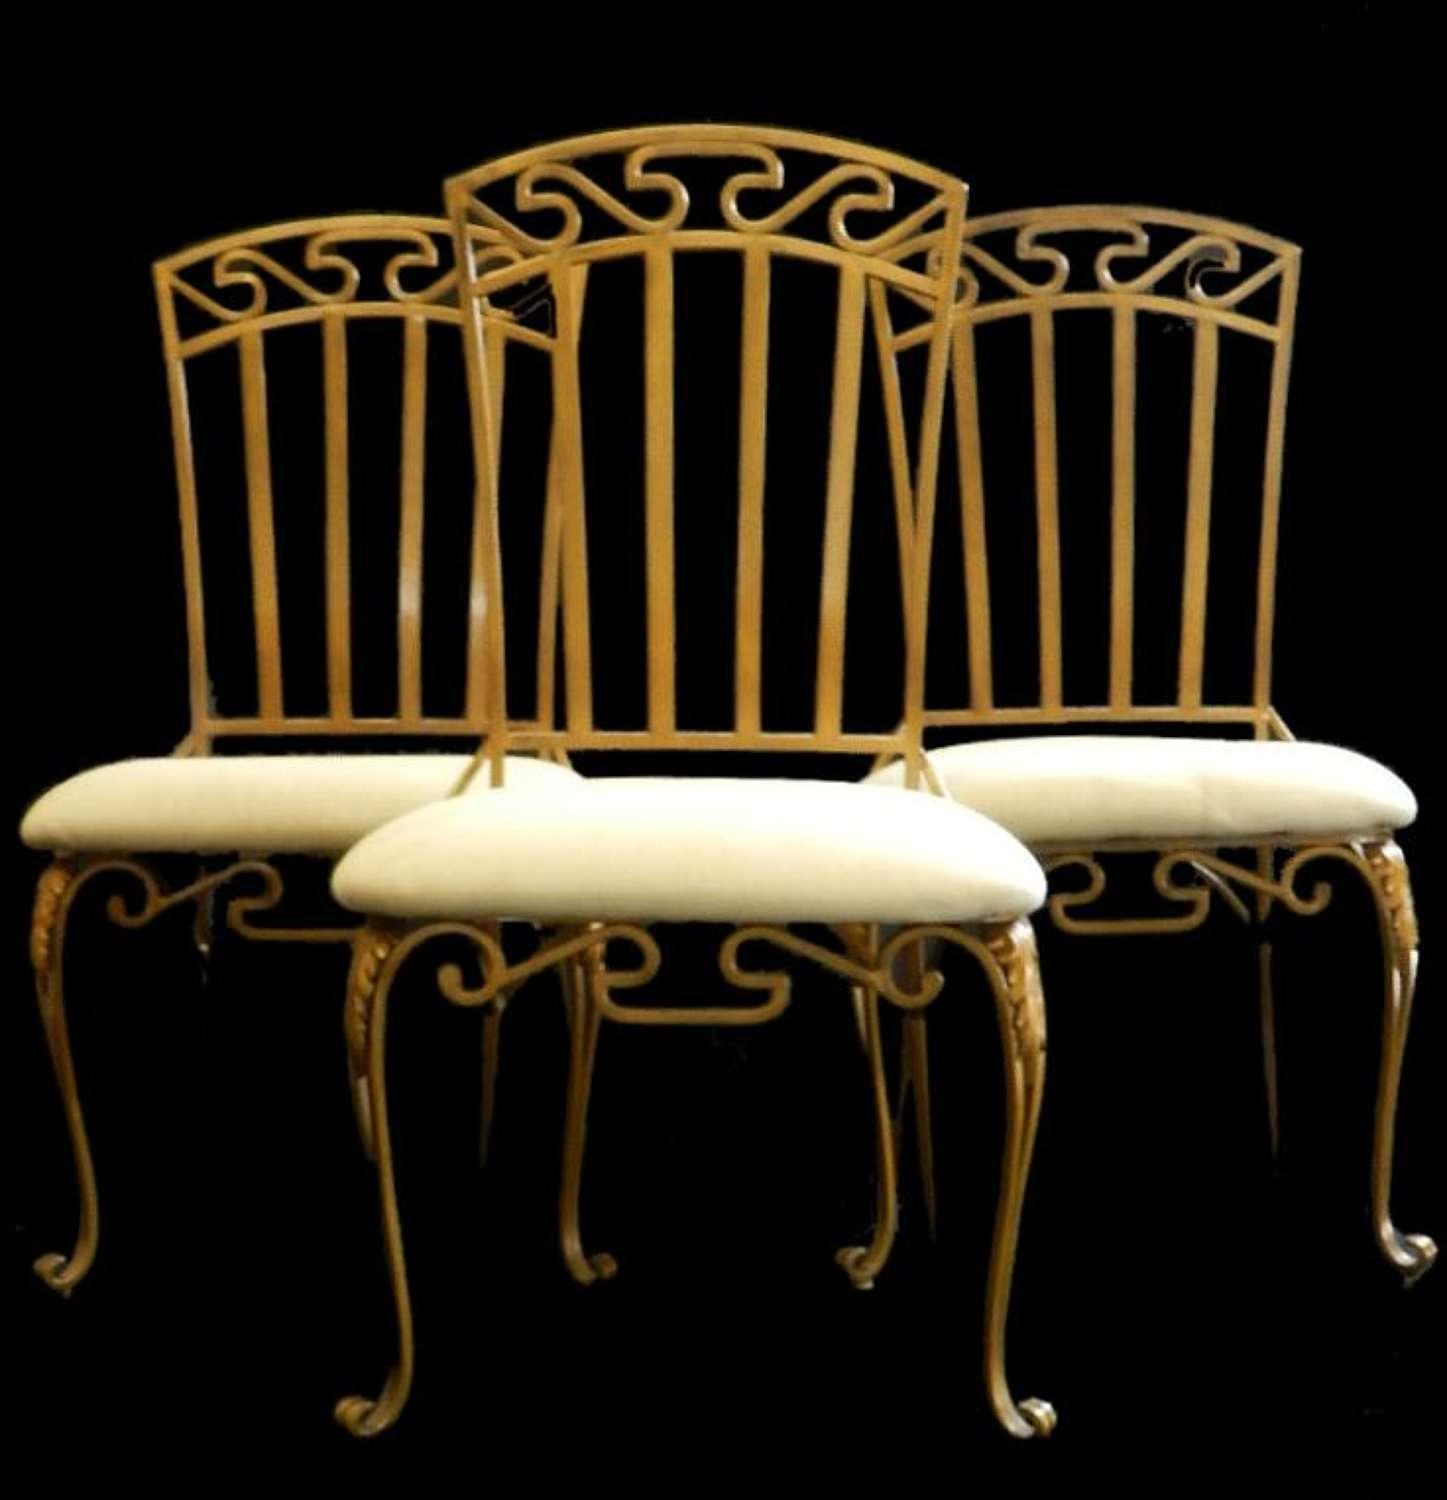 3 French C20 Louis Grecian Design Metal Dining Garden Chairs